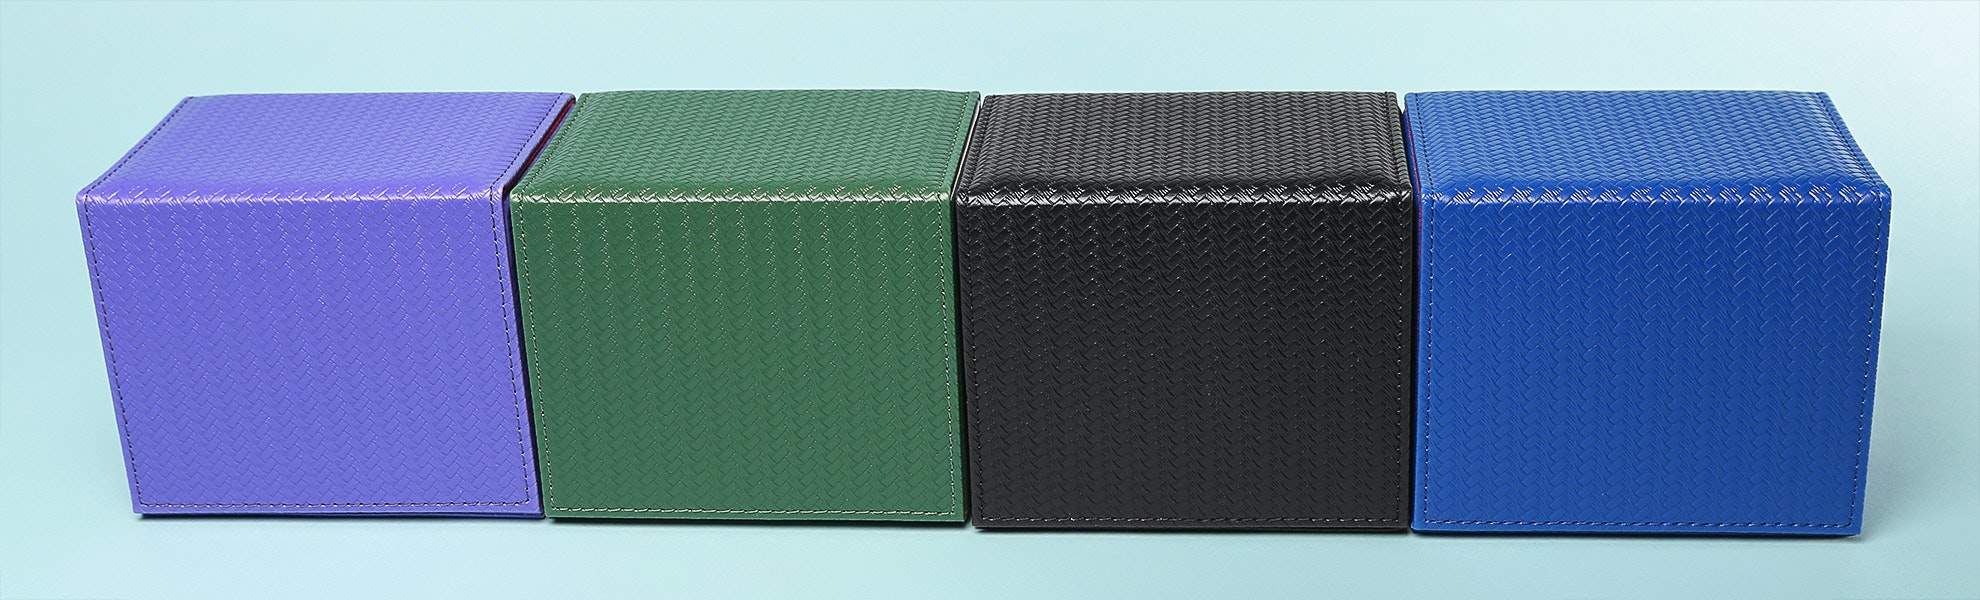 DEX Protection Pro Line Deck Box - Small (2-Pack)